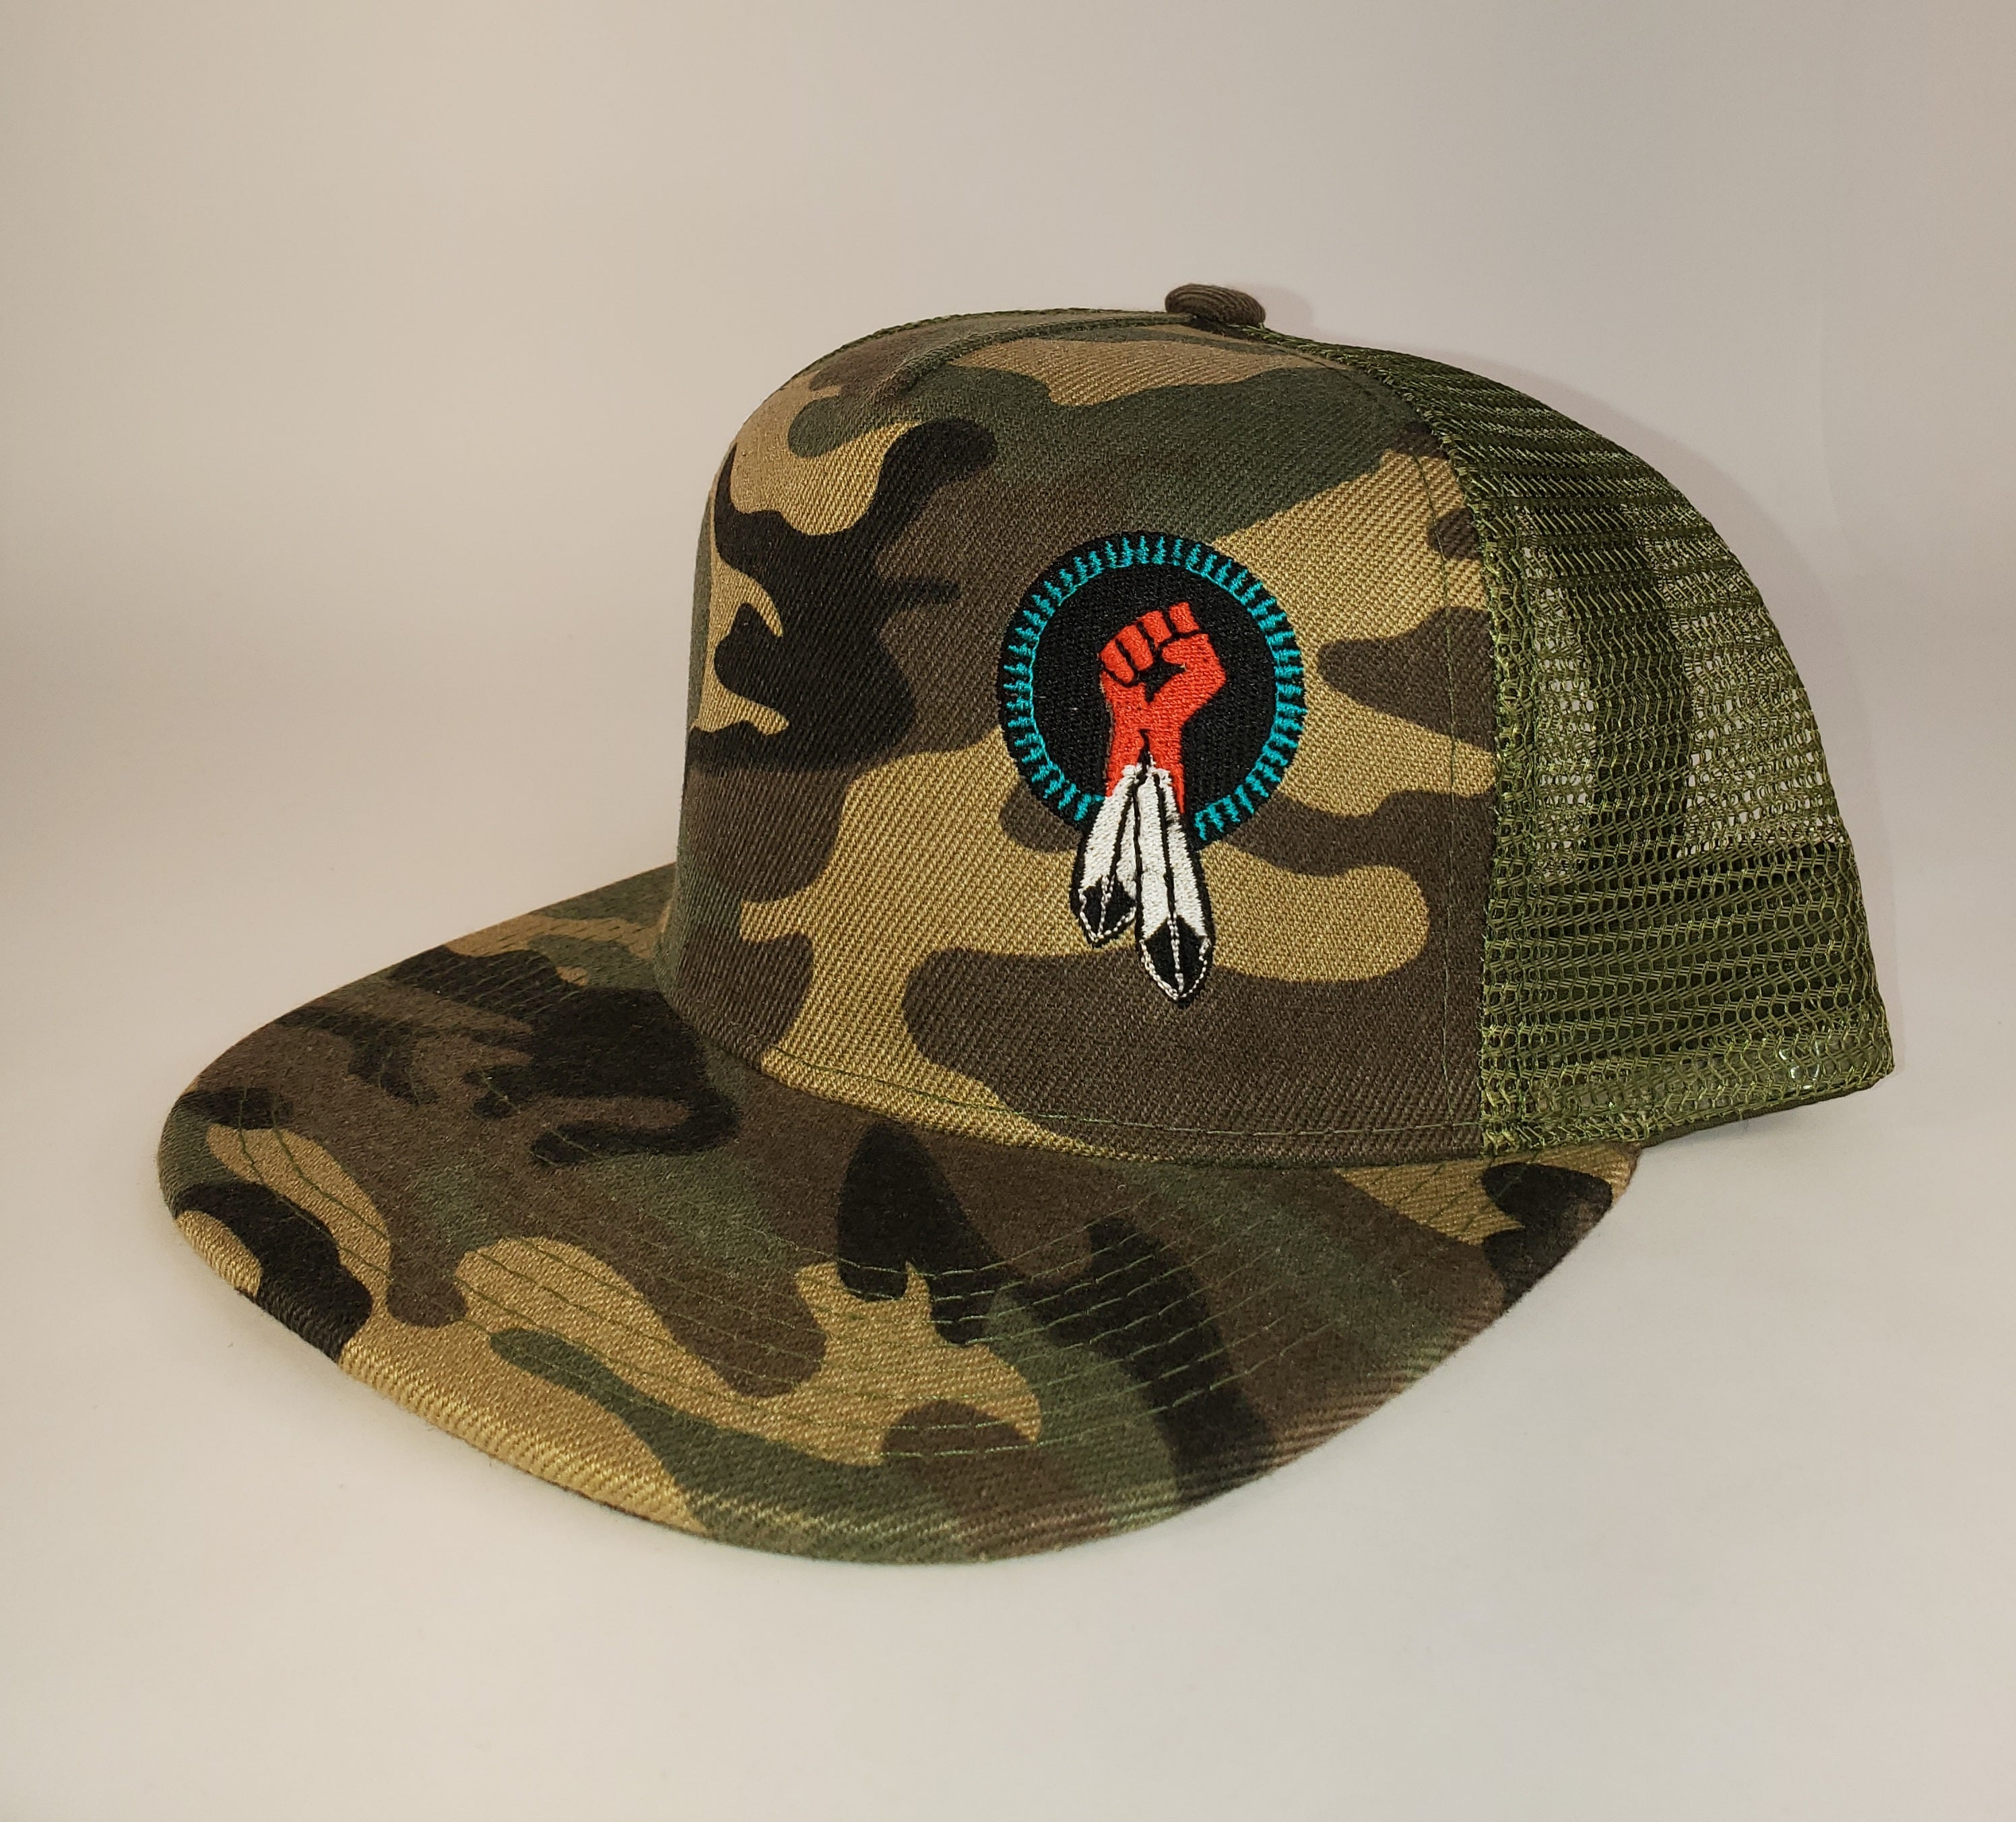 N8V MOVEMENT cap embroidered camo snapback